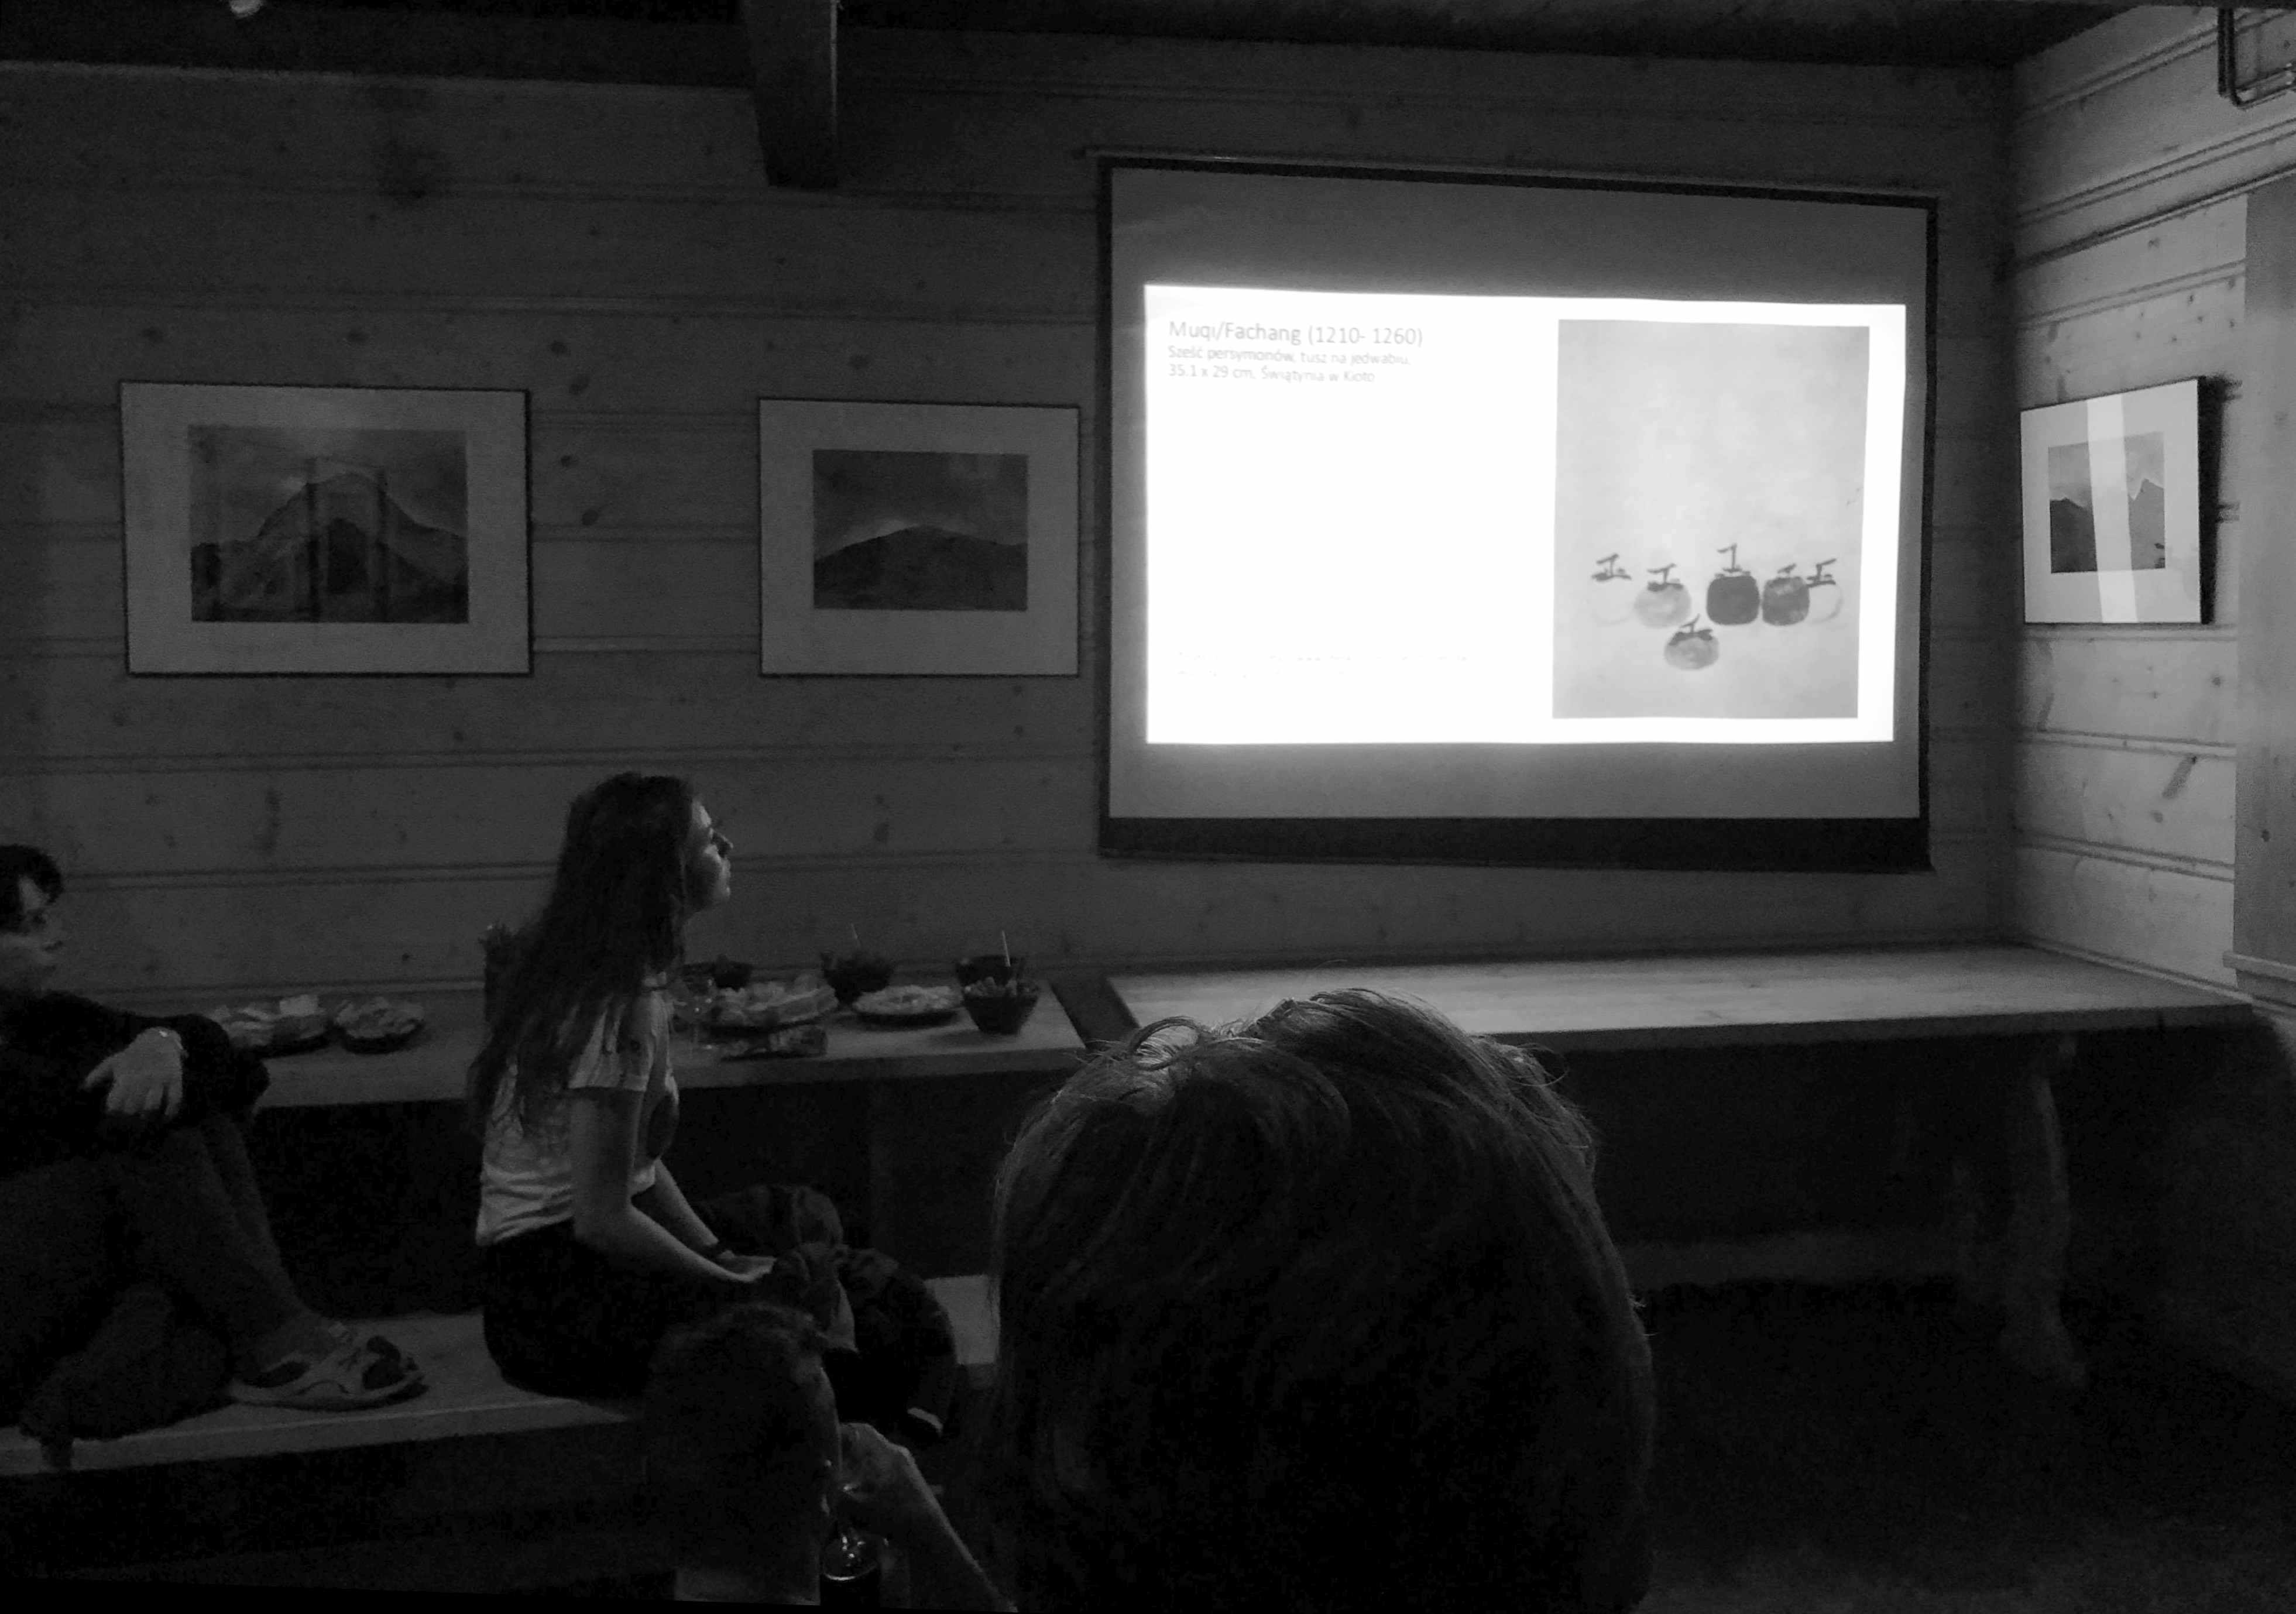 Presentation about ink paintings, PTTK Hostel in the Roztoka Valley, Tatra Mountains, 2019